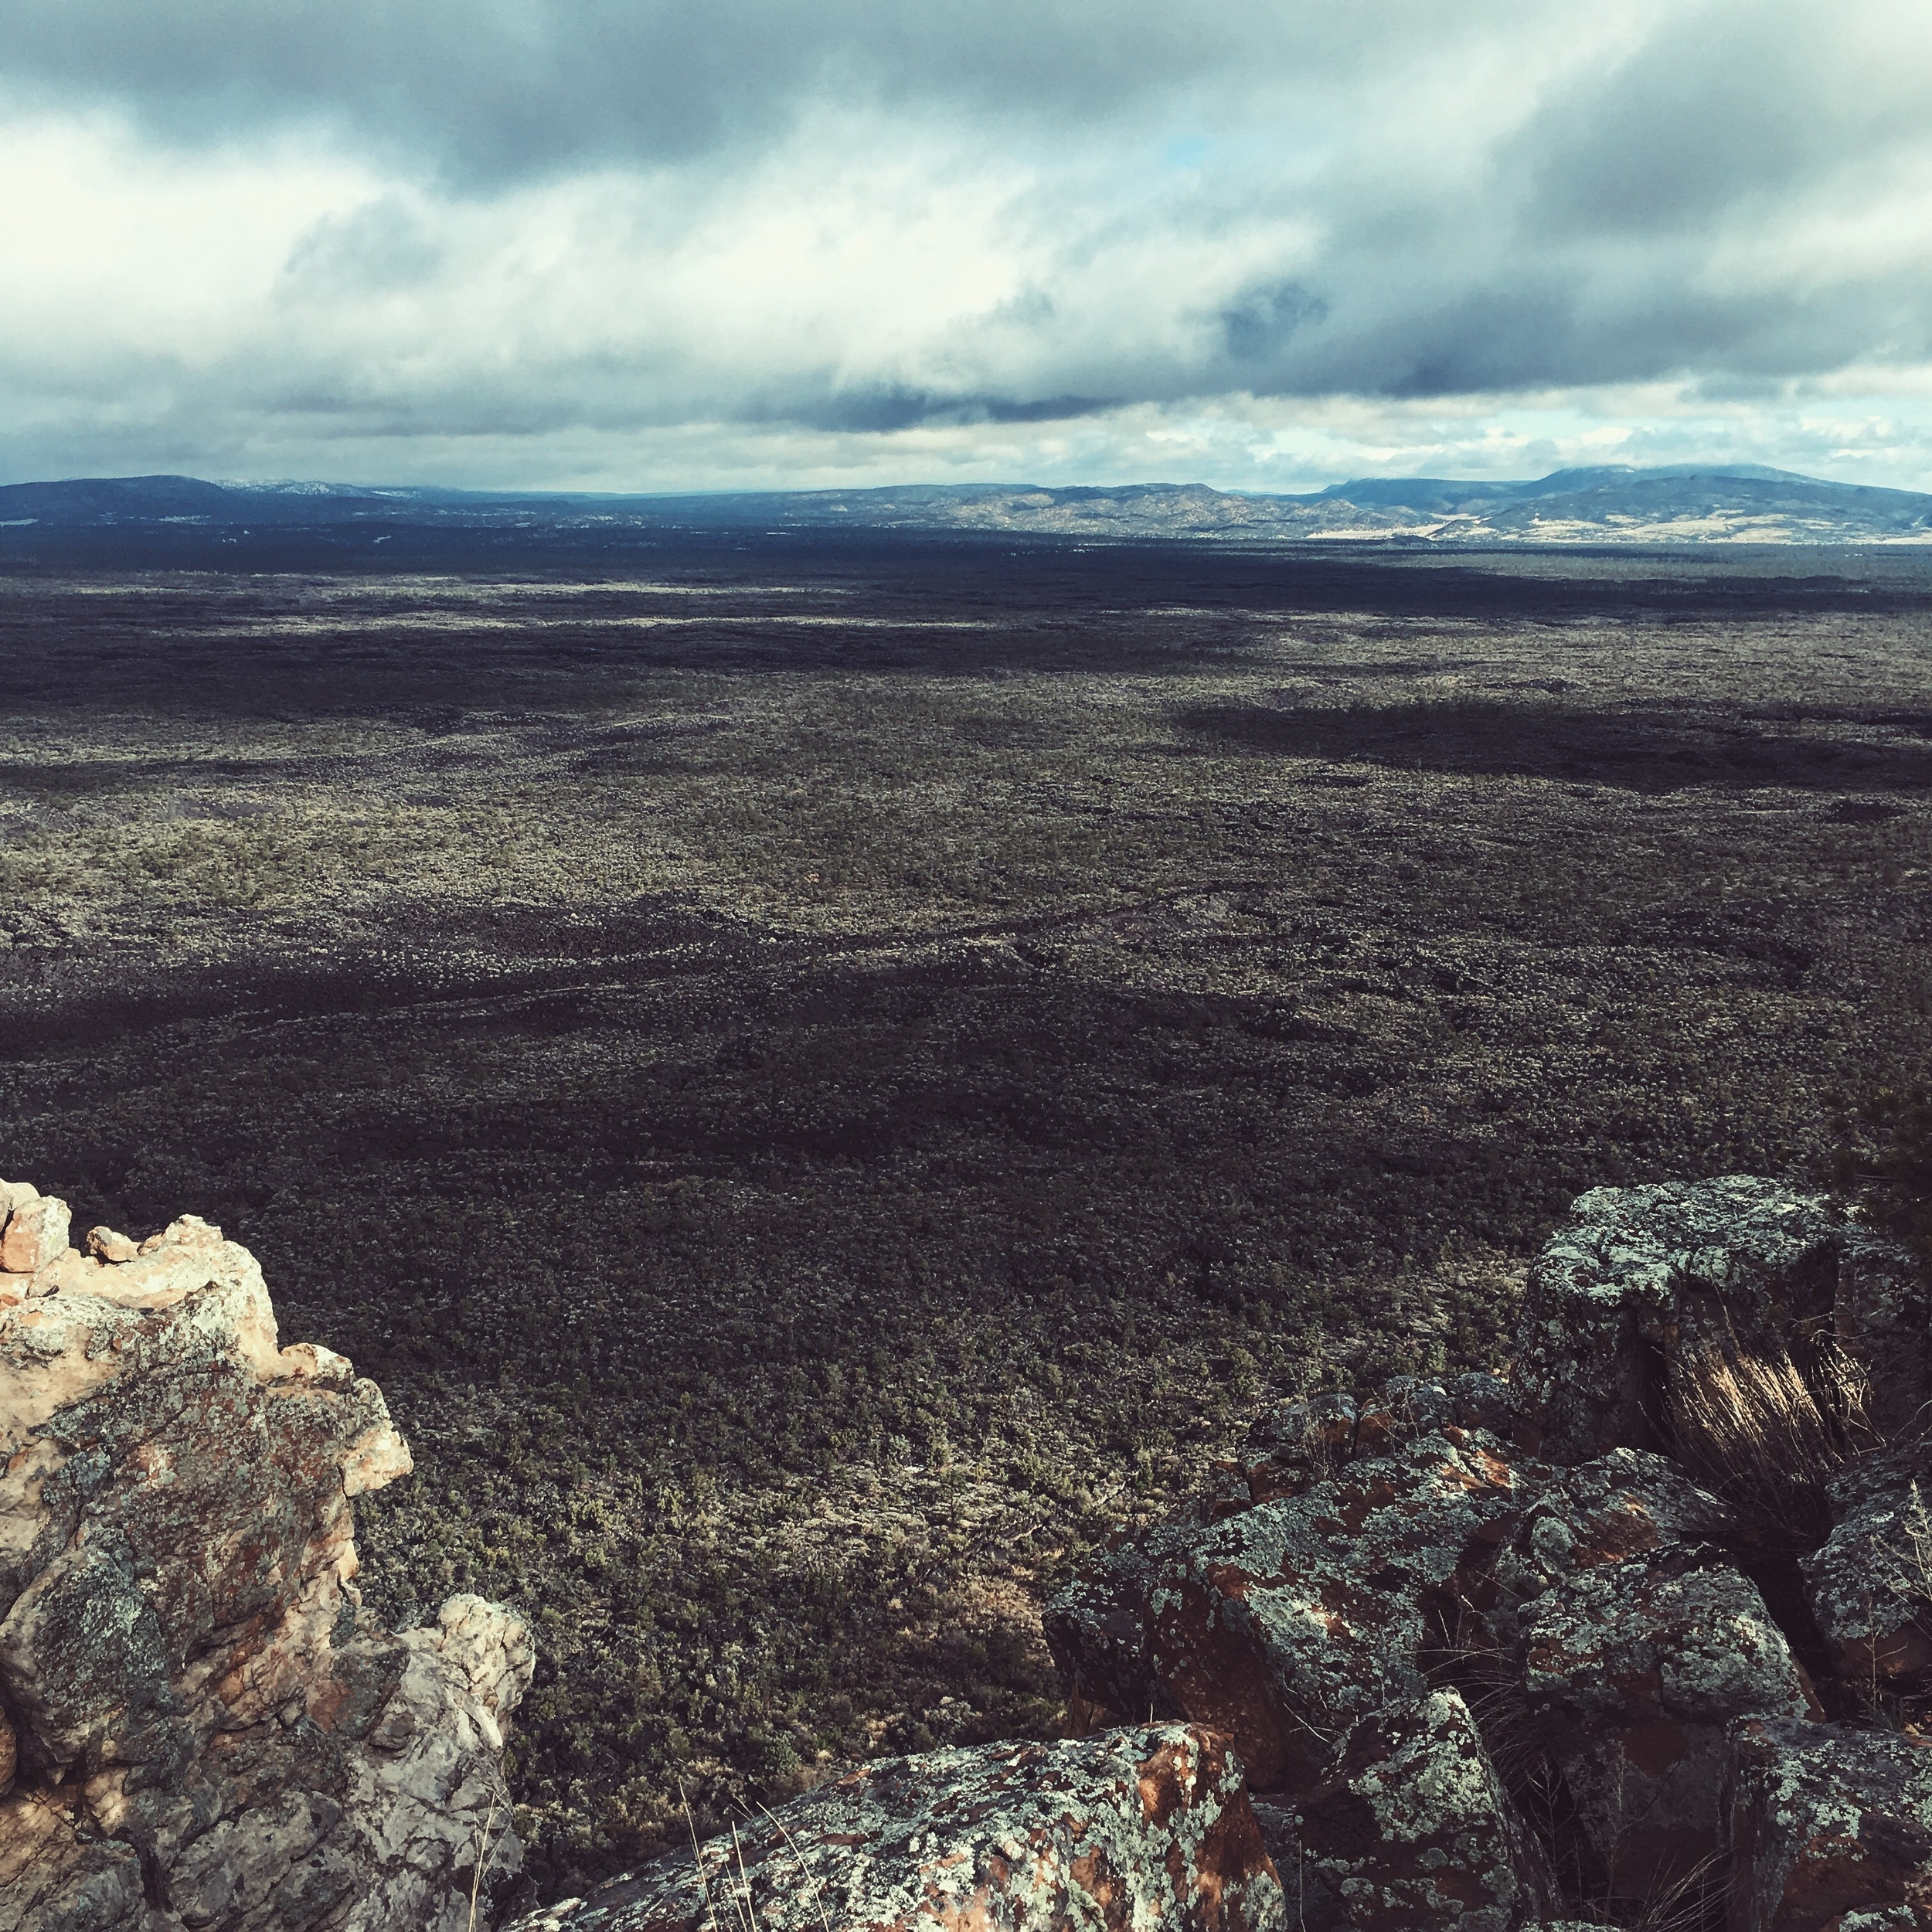 View of the lava fields we were soon to cross